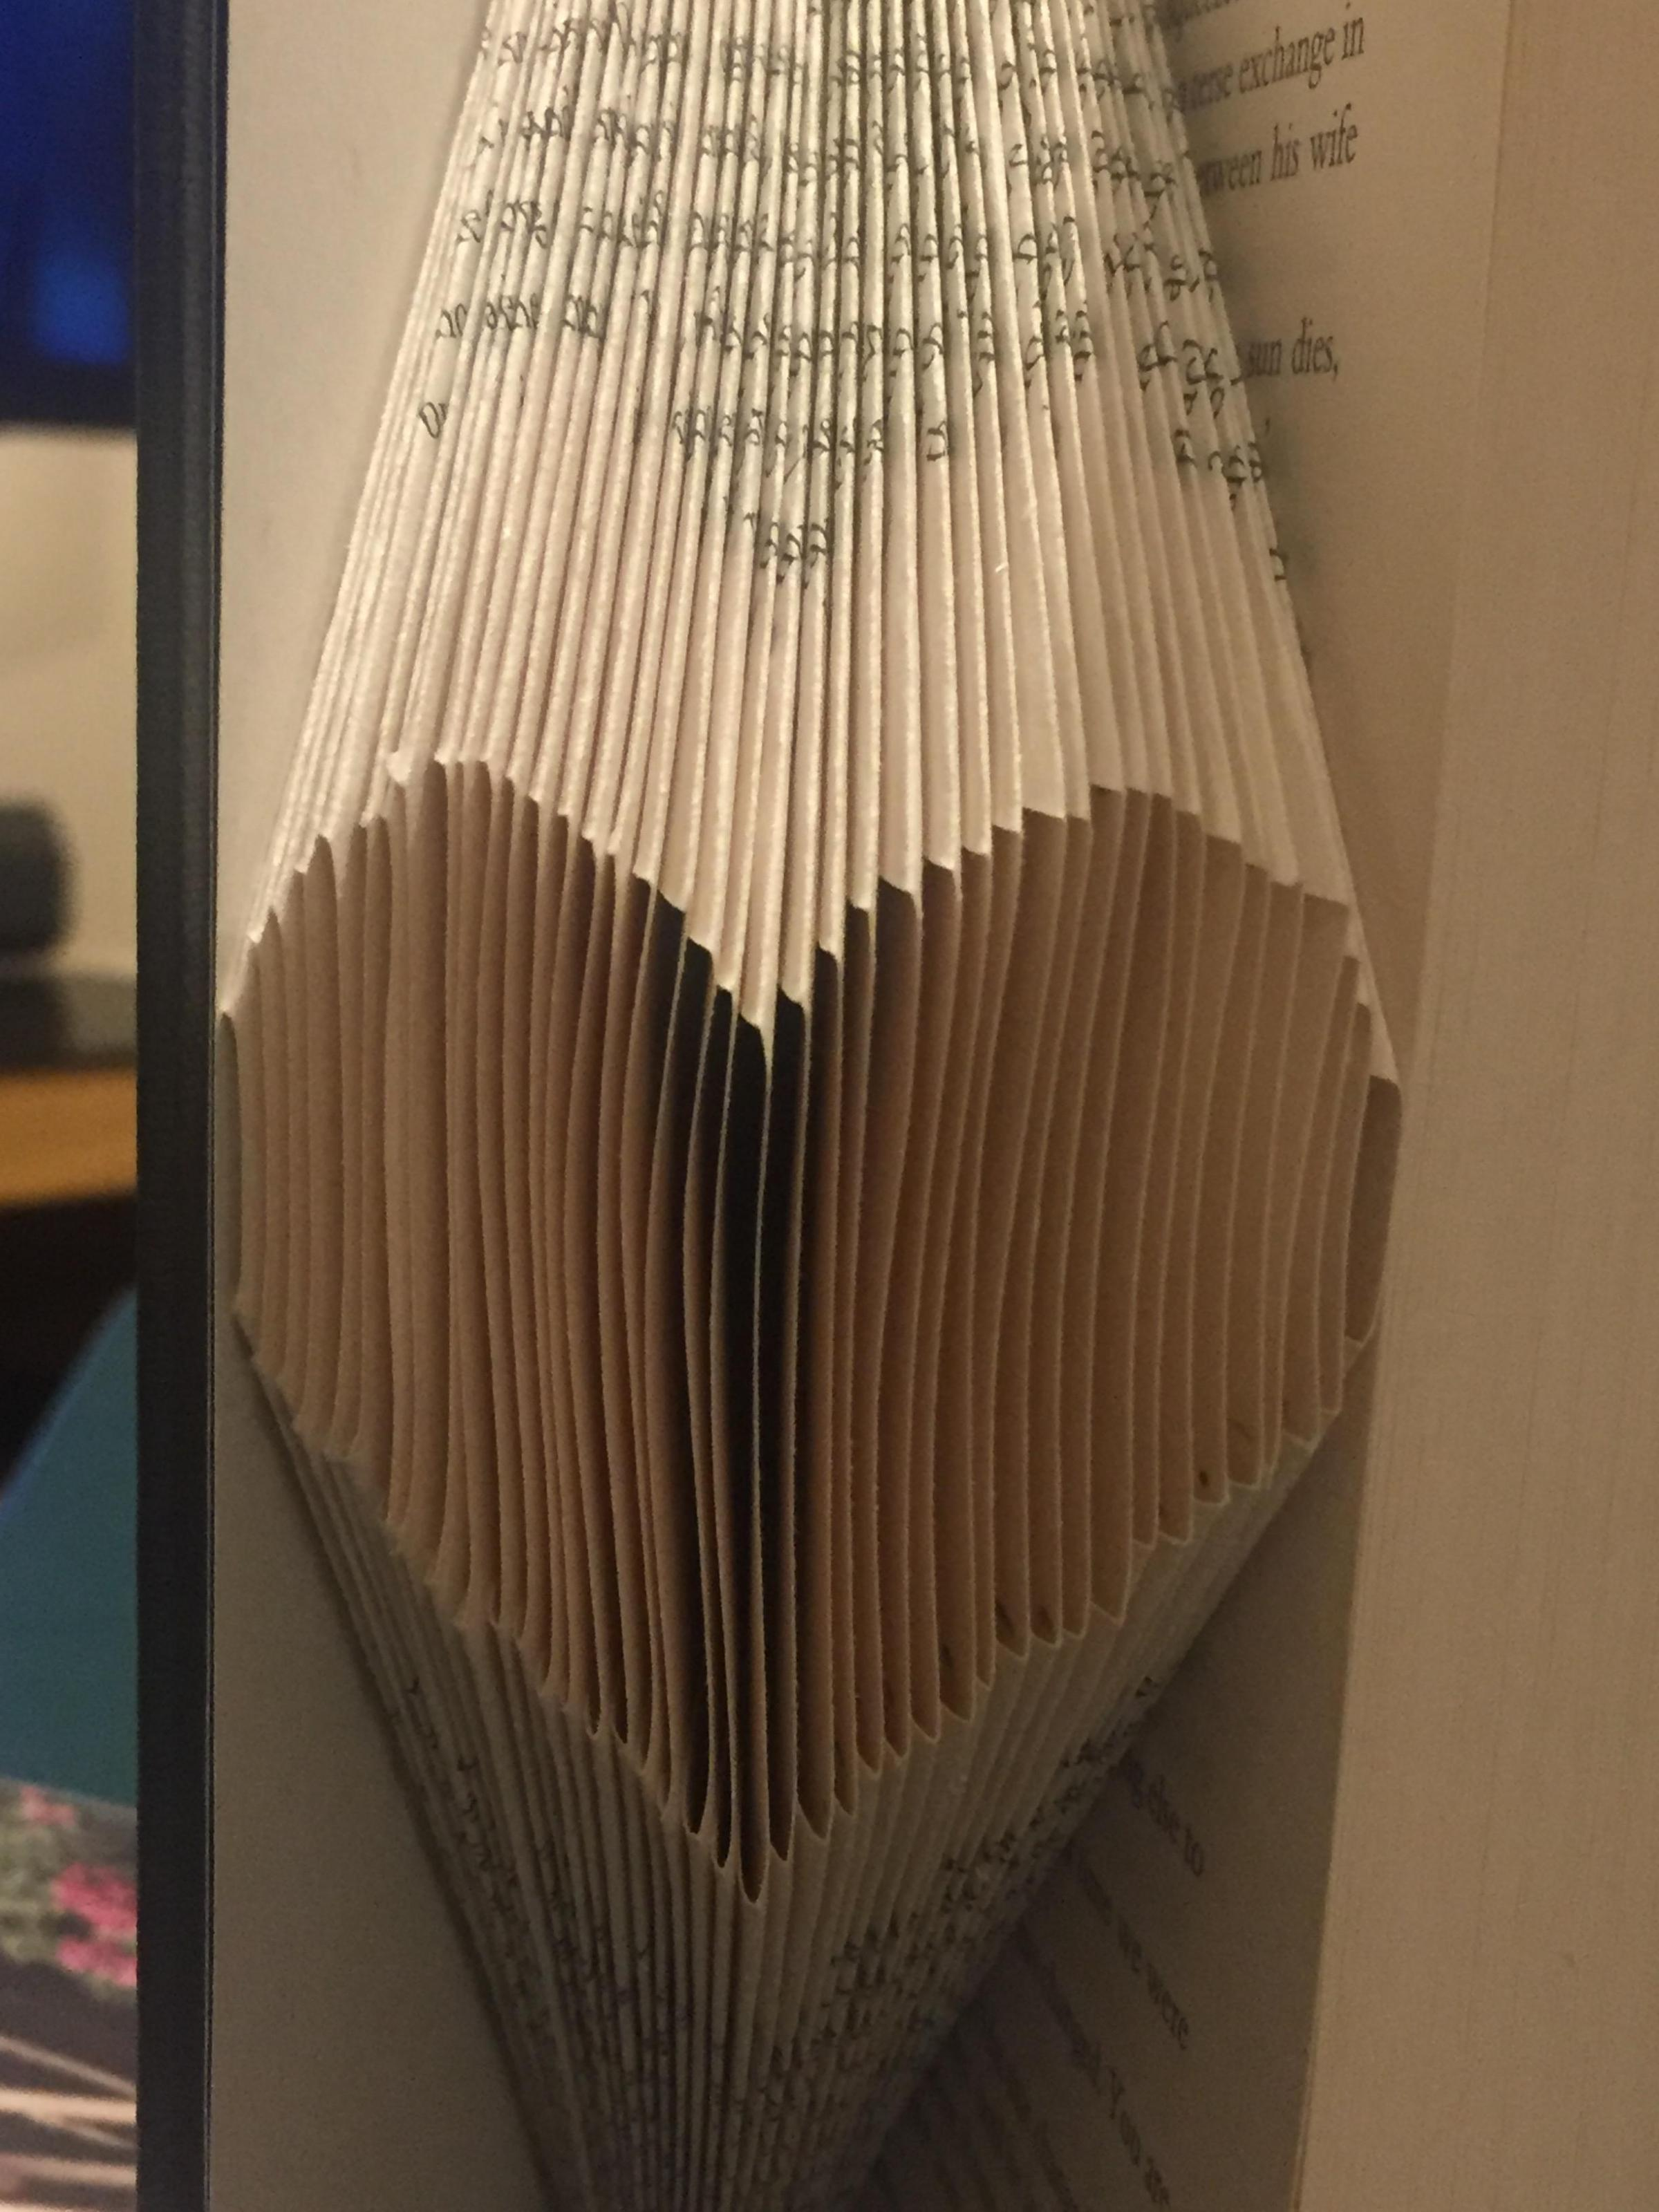 Beginners Book Art Workshop for Adults